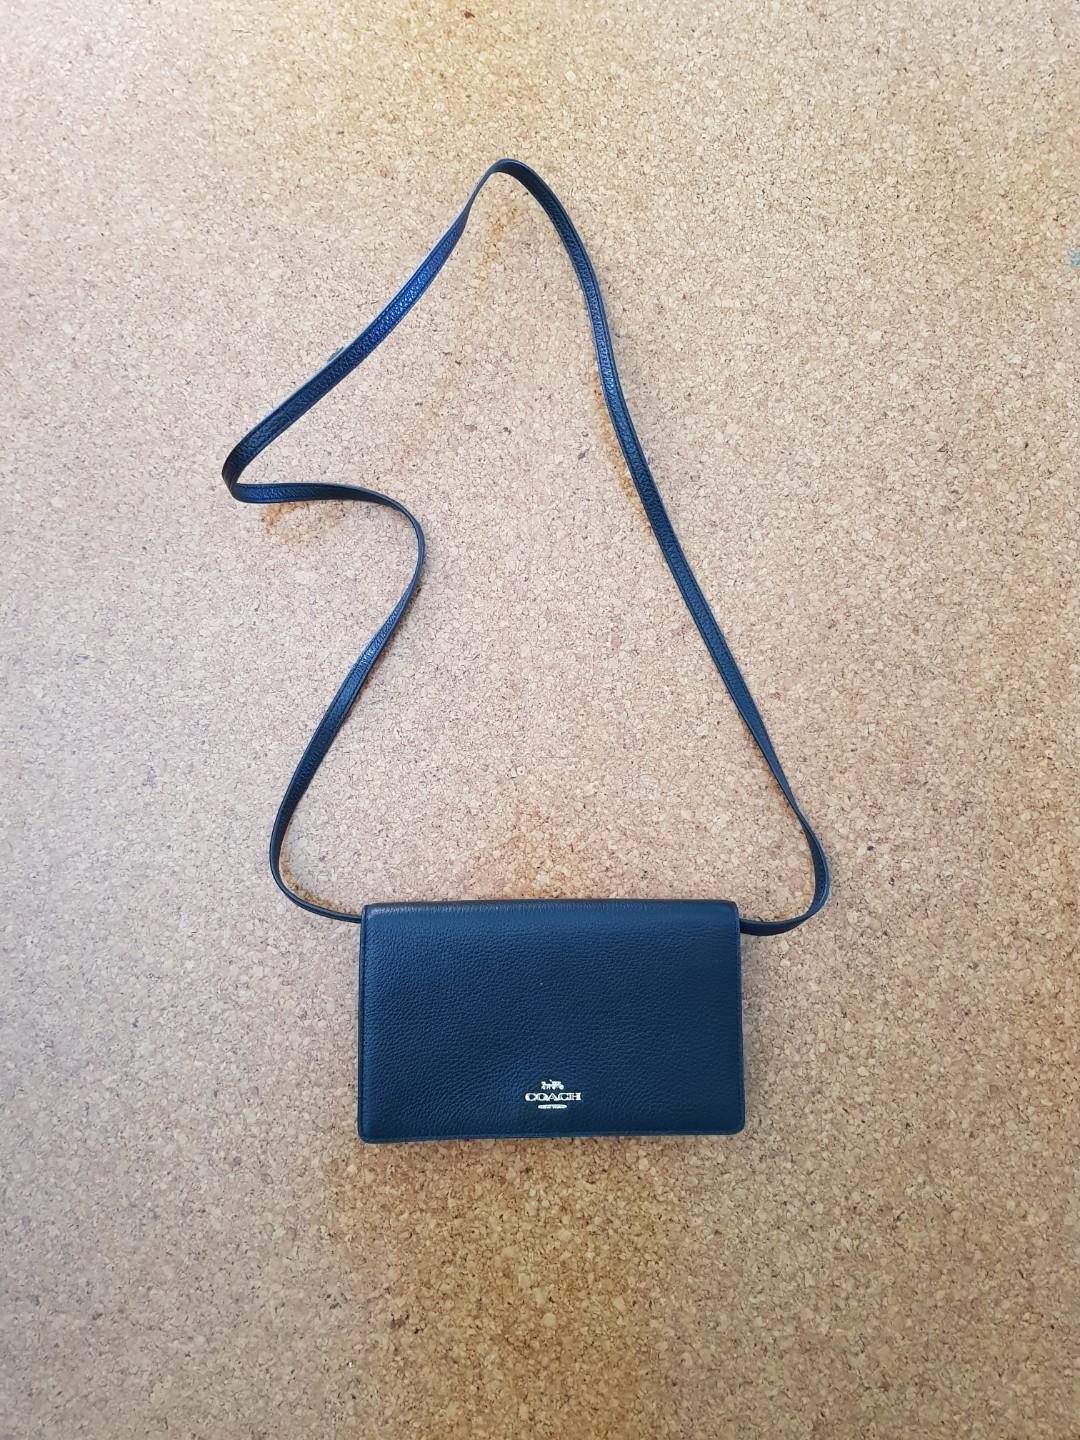 Coach Crossbody Bag (Black)